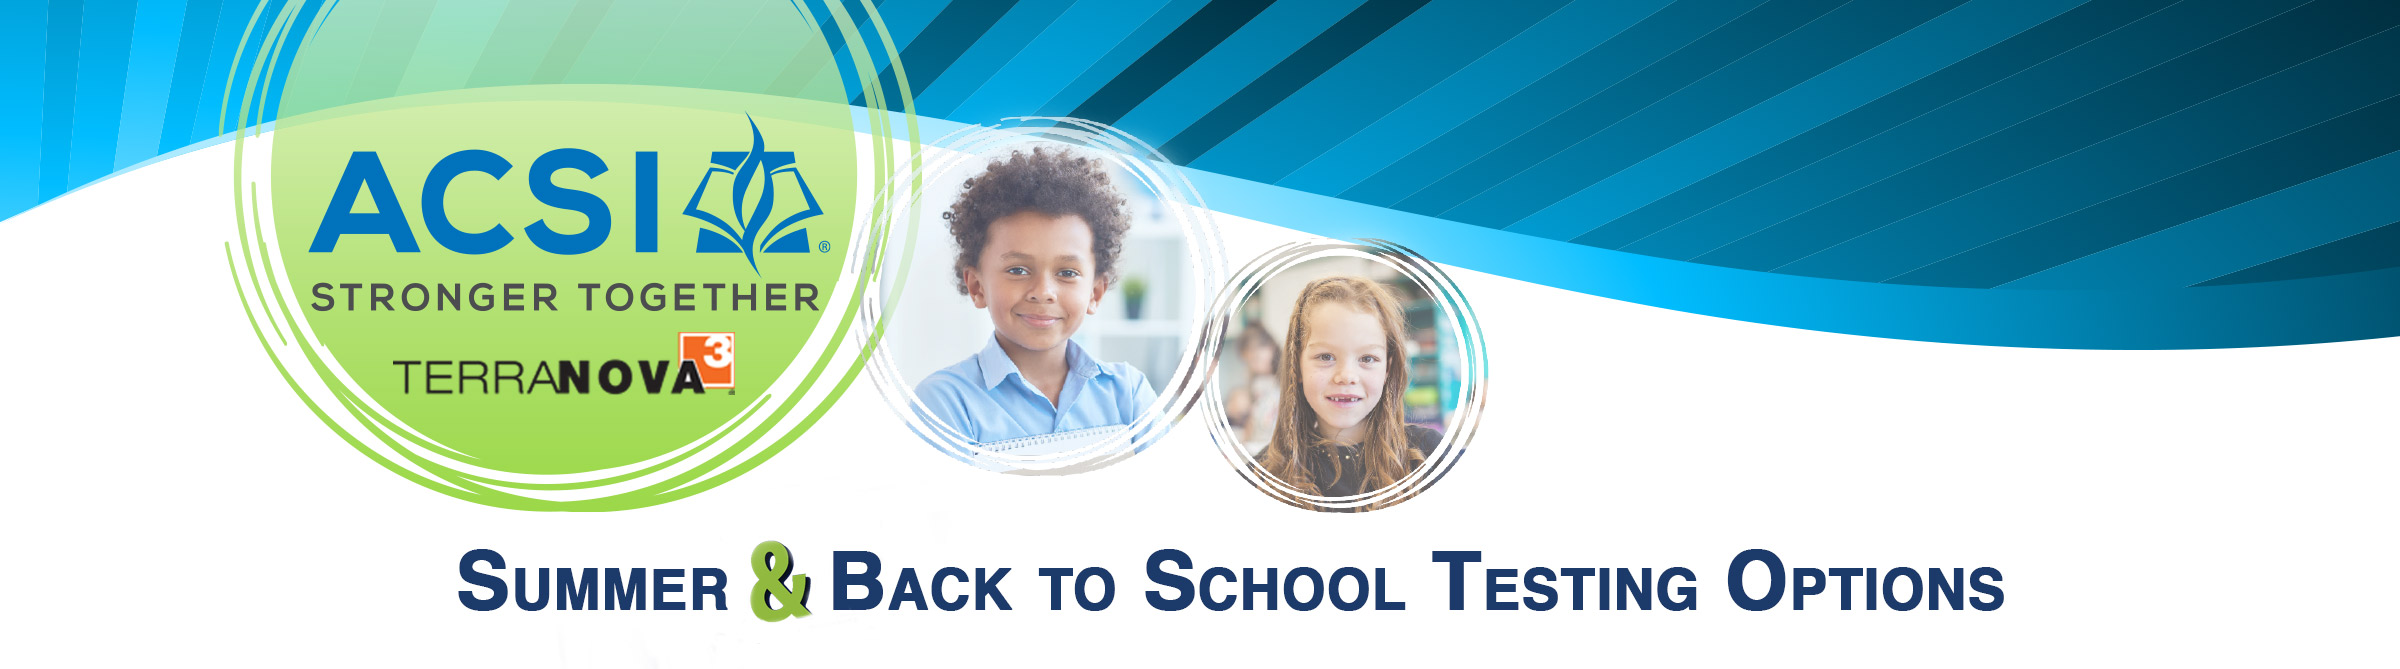 TerraNova3 Summer and Back to School Testing Options